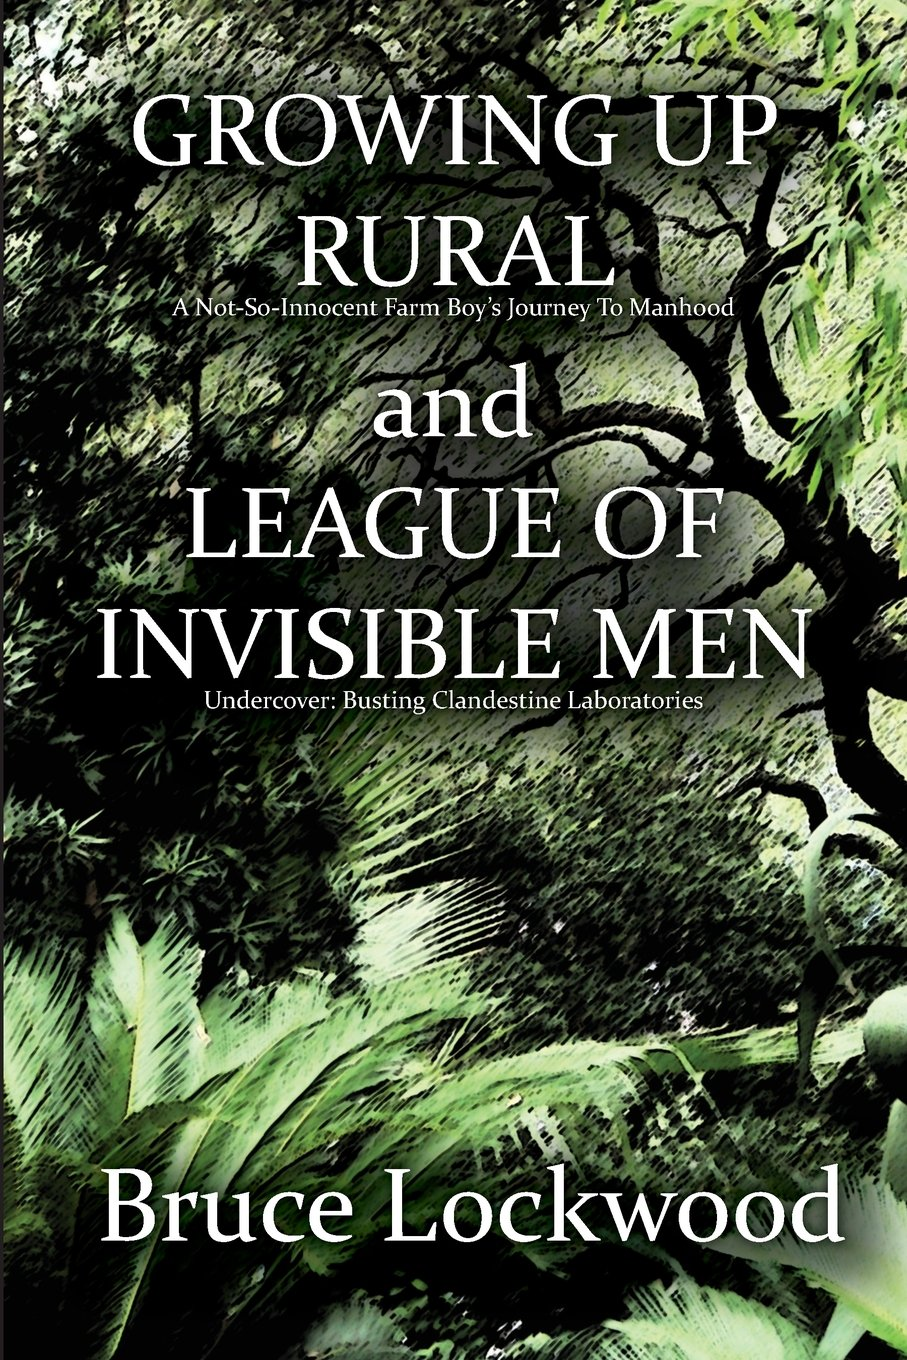 Growing Up Rural and League of Invisible Men